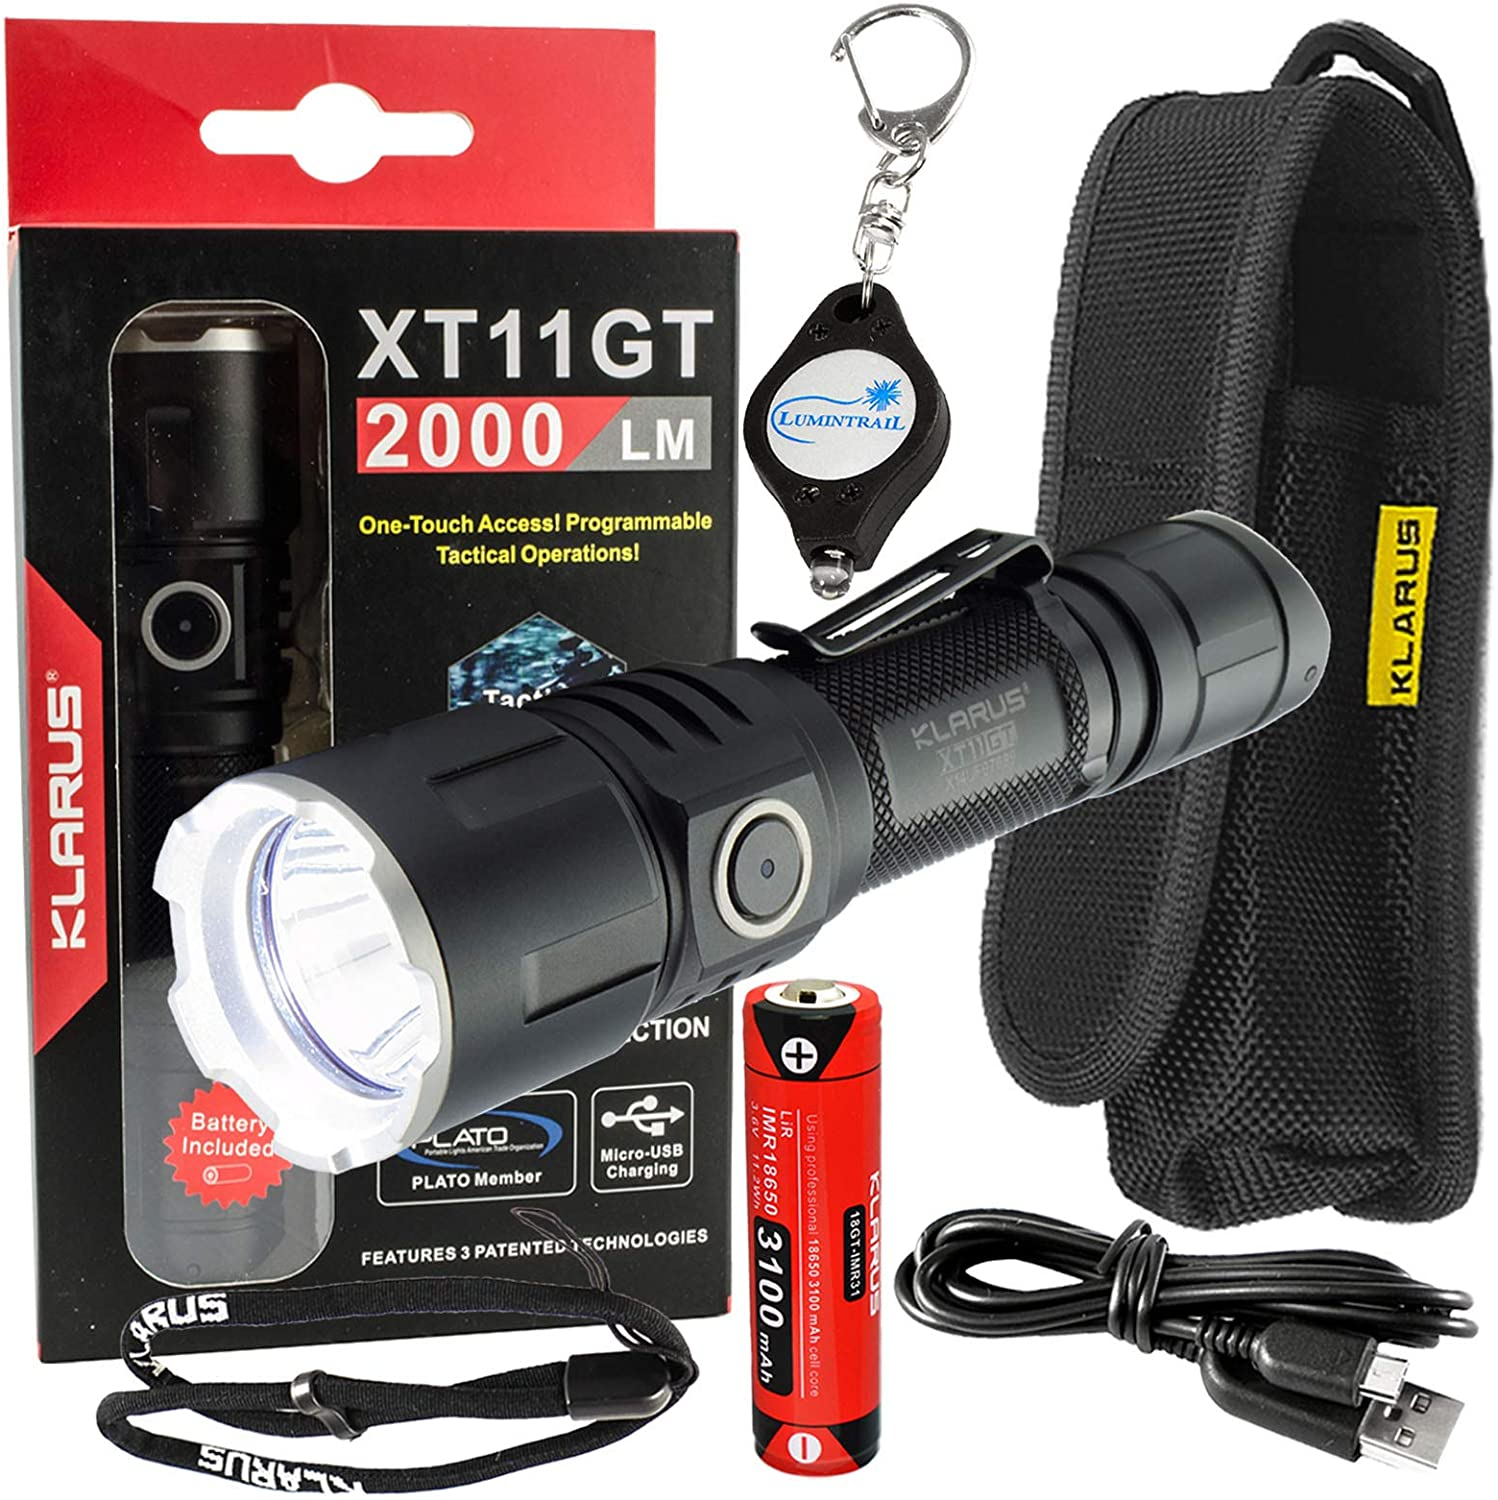 klarus XT11GT Tactical Rechargeable Flashlight CREE XHP35 HD E4 LED 2000 Lumens w/Lumintrail Keychain Light